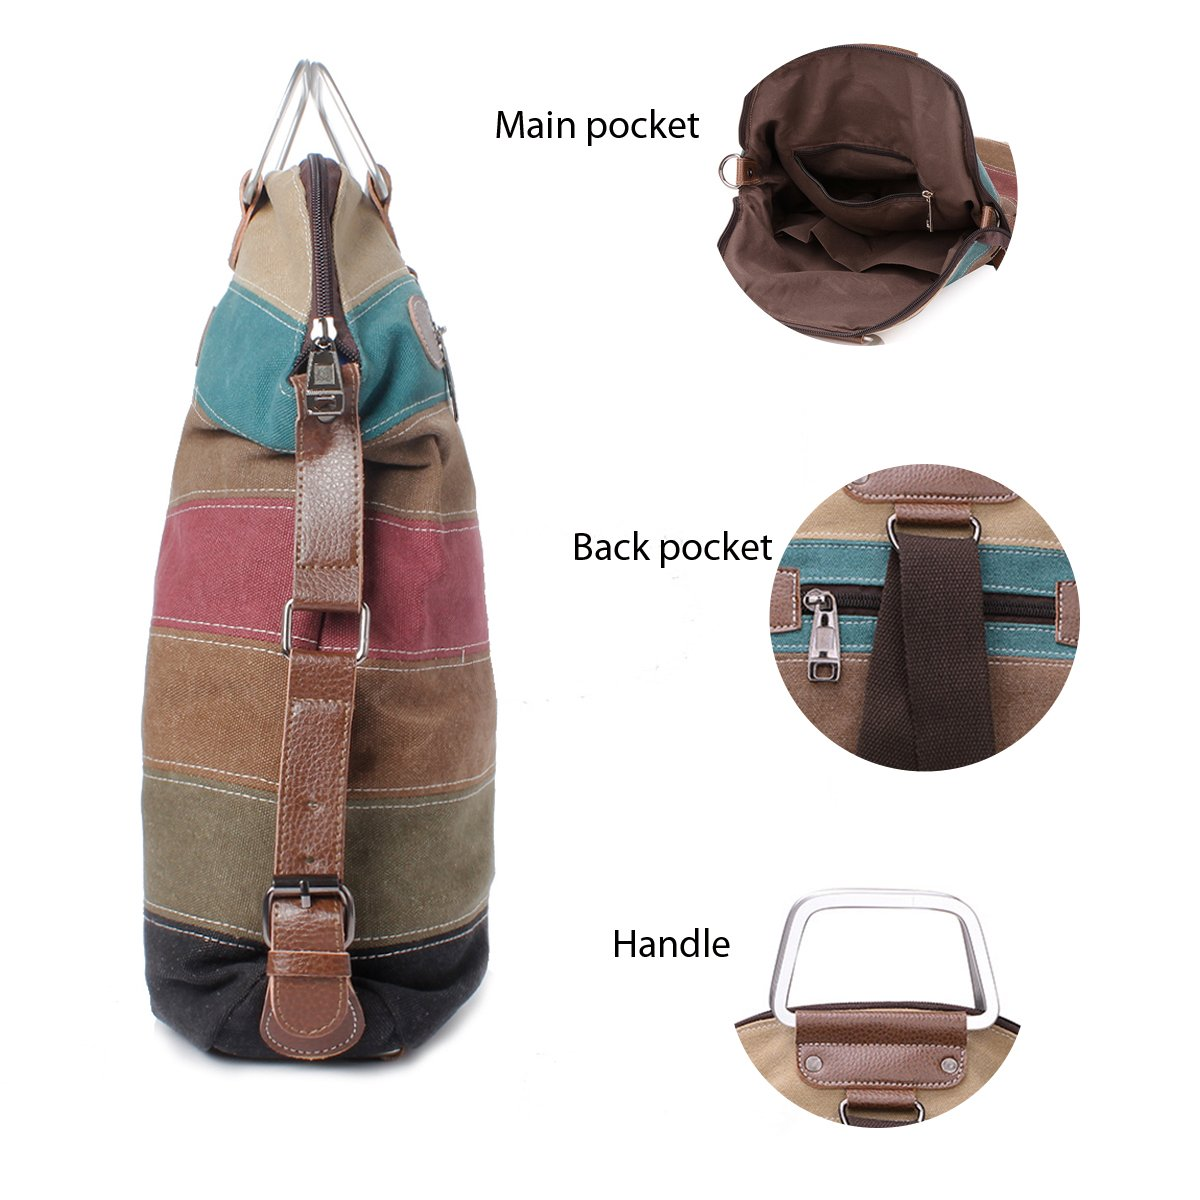 Amazon.com | La Desire Multi-Function Convertible Canvas Shoulder Bag Crossbody Sling Bag Messenger Bag Backpack Handbag for Women (Retro) | Backpacks